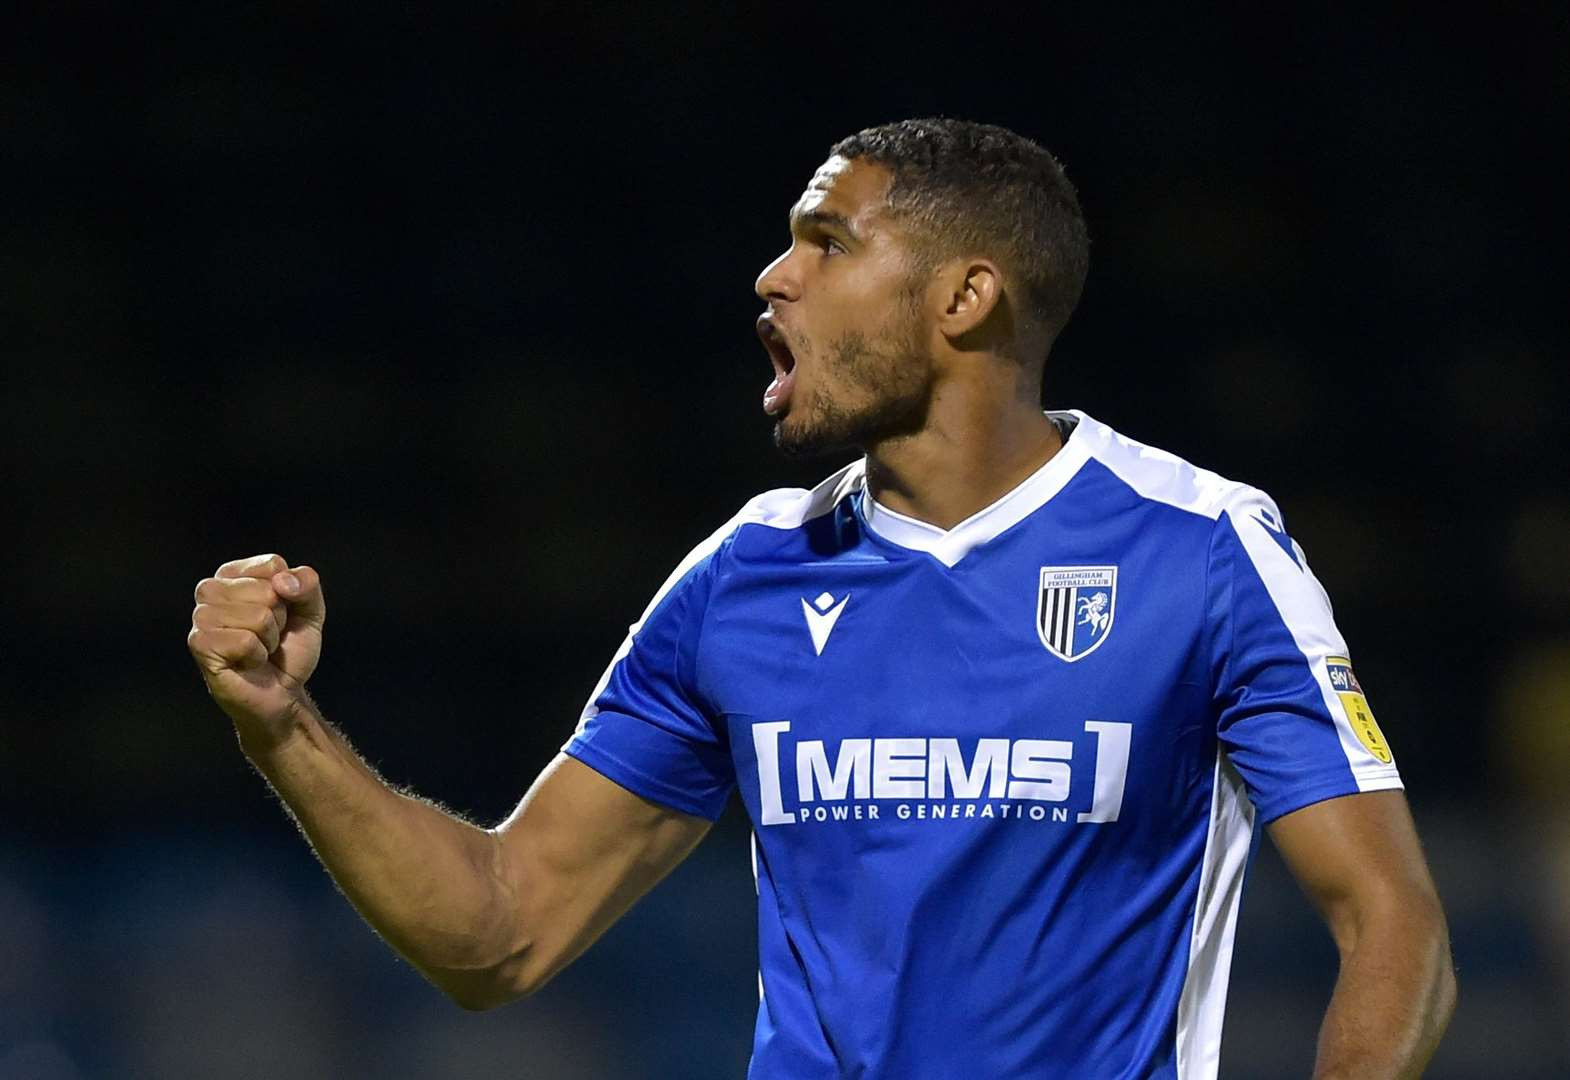 The Shouting Men: Gills striker eager to recapture some of his past form in the FA Cup